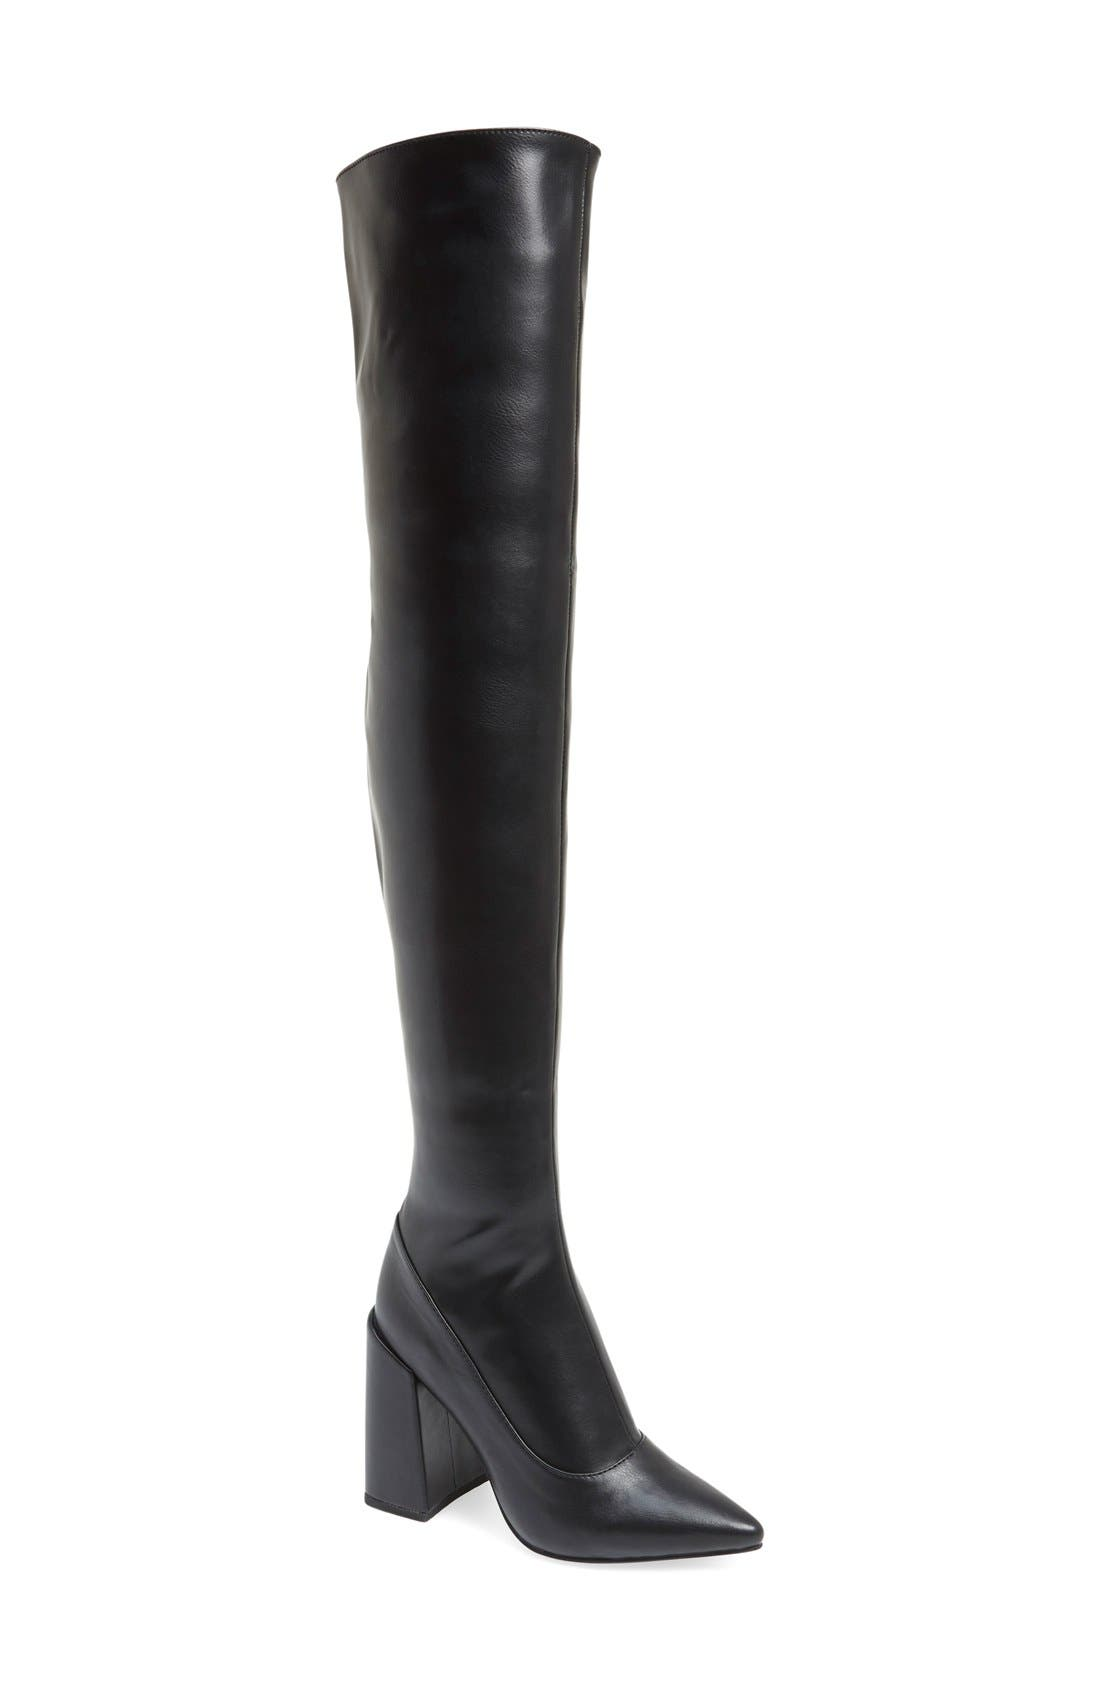 Alternate Image 1 Selected - Jeffrey Campbell 'Ransom' Over the Knee Boot (Women)